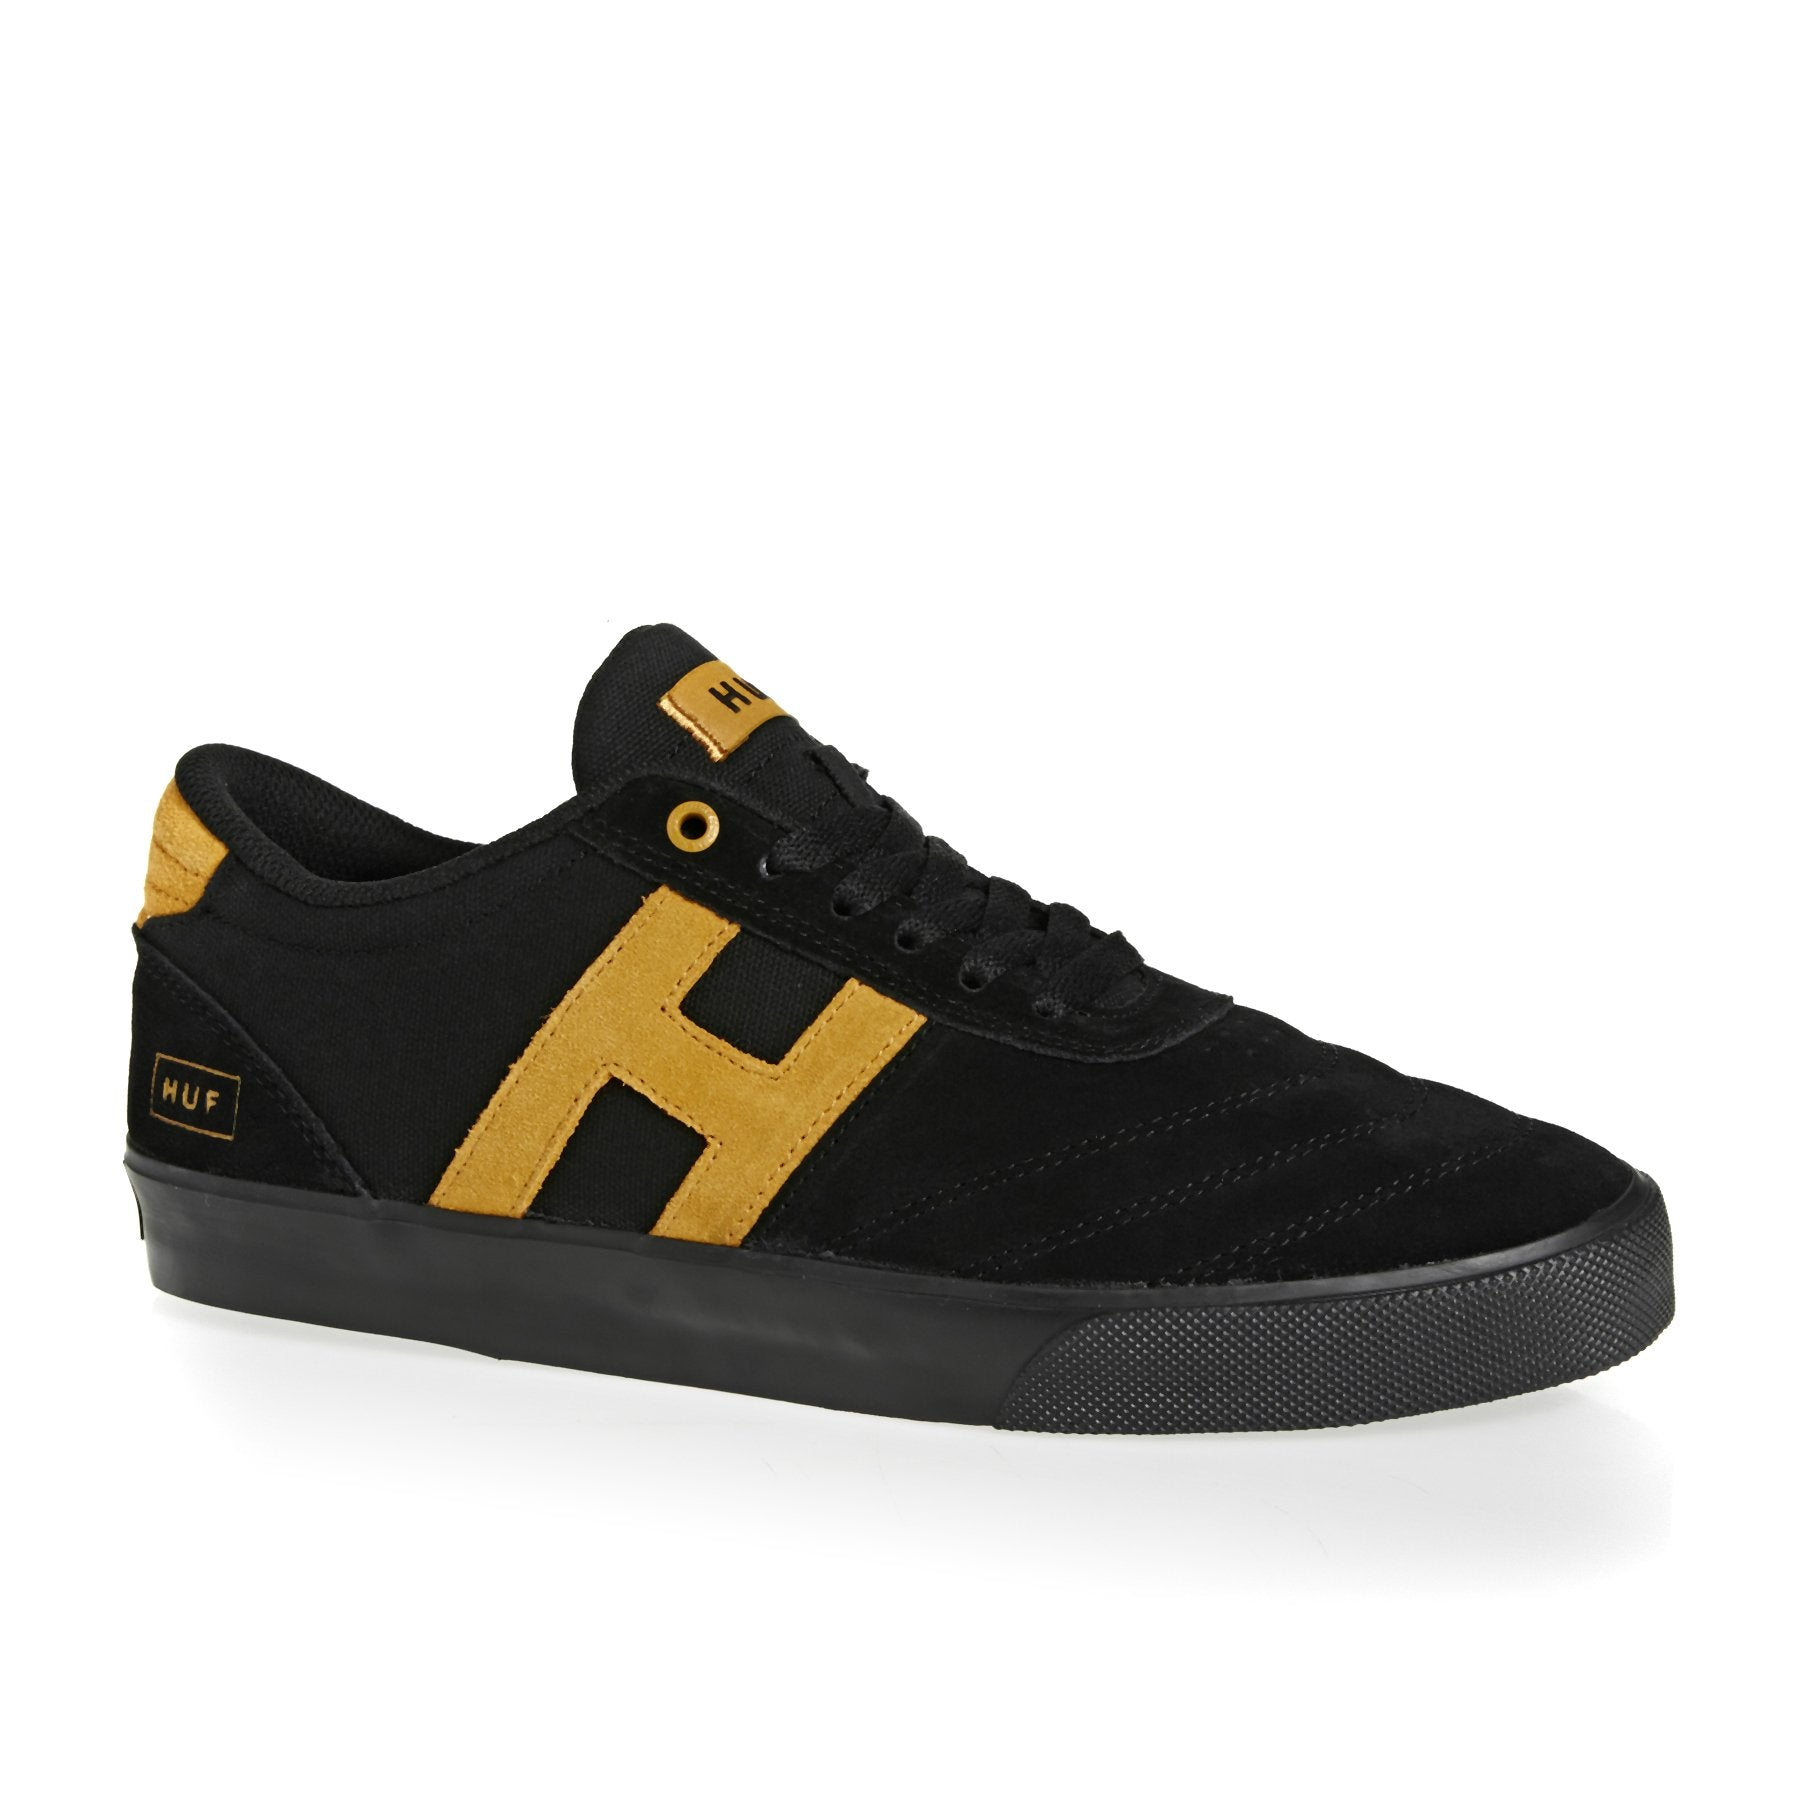 Huf Galaxy Shoe - Mens - Black